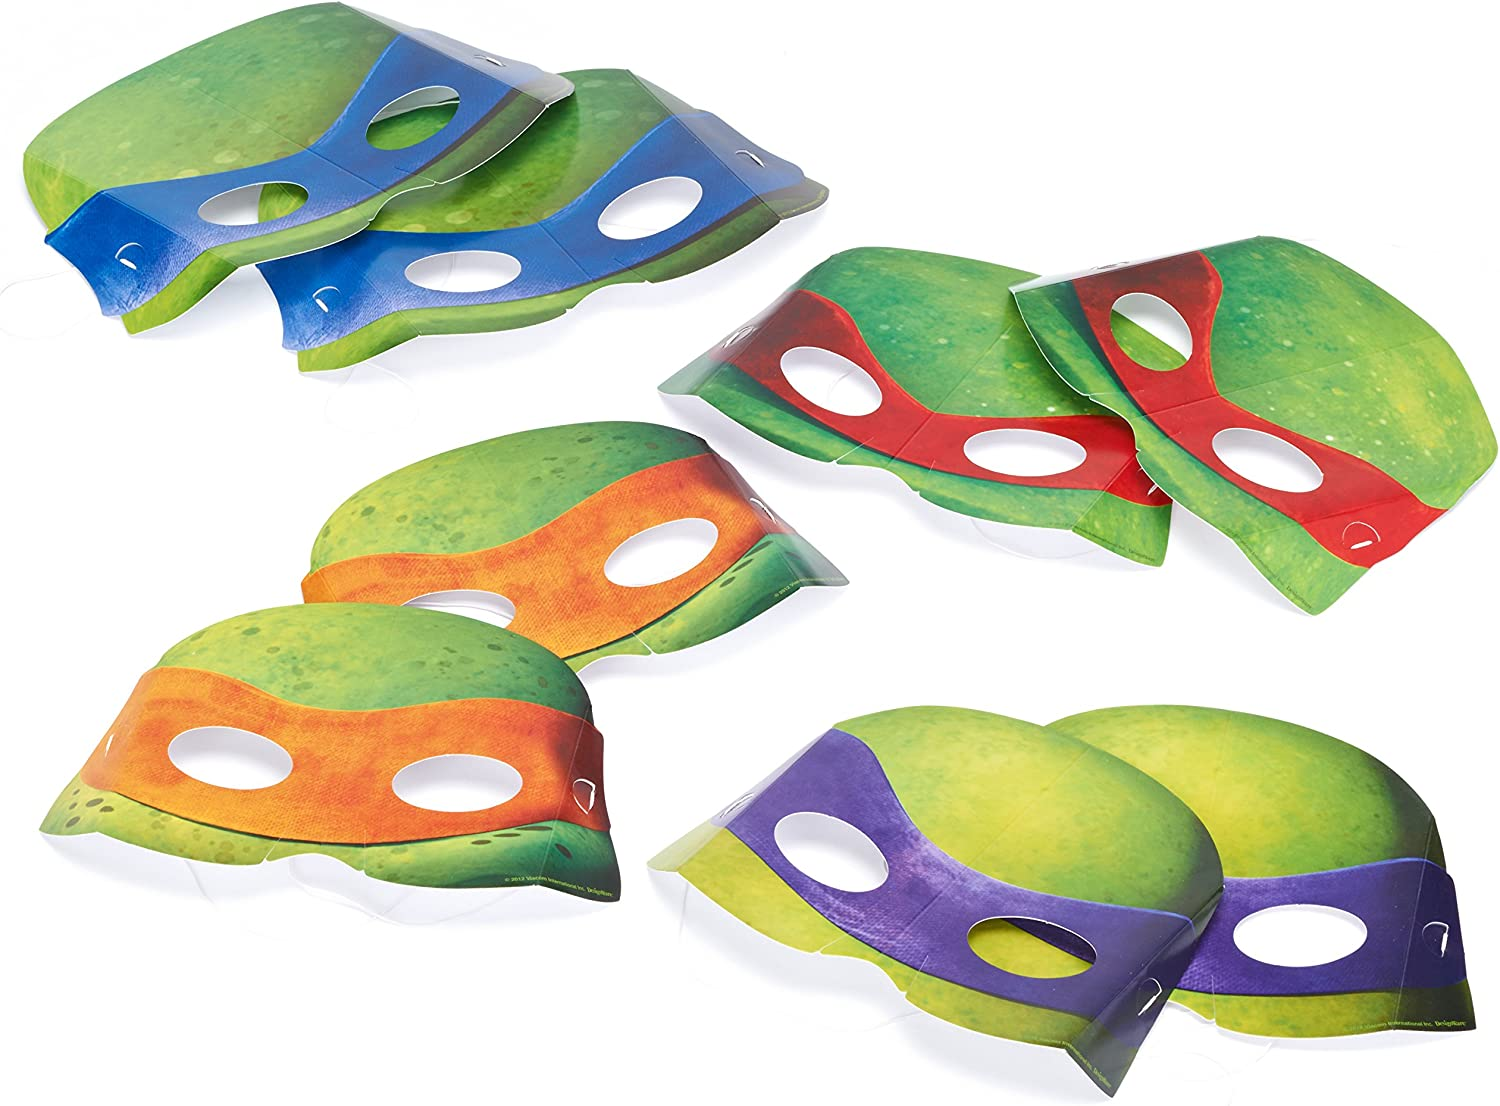 American Greetings Teenage Mutant Ninja Turtles (TMNT) Party Favors, Paper Party Masks (8-Count)